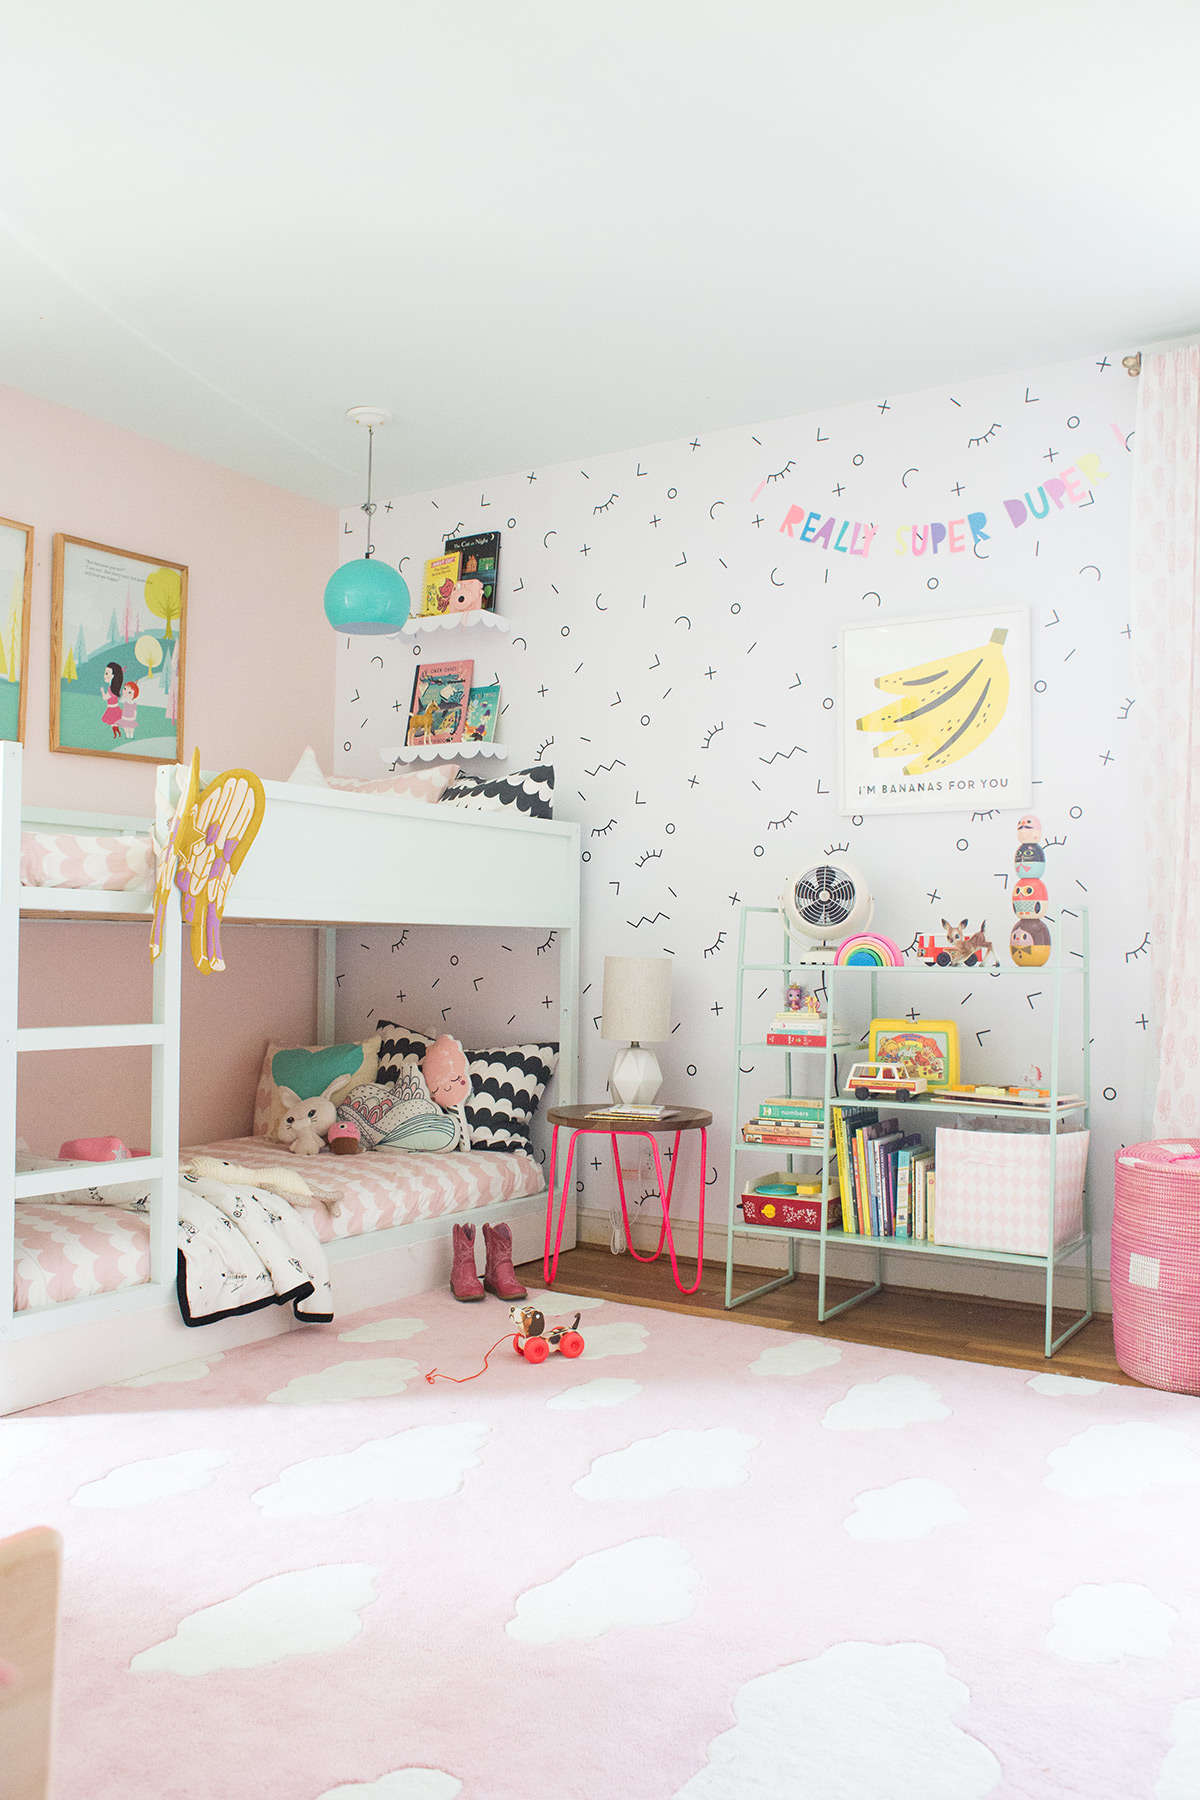 A shared bedroom with bunk beds lay baby lay lay baby lay Bunk bed boys room